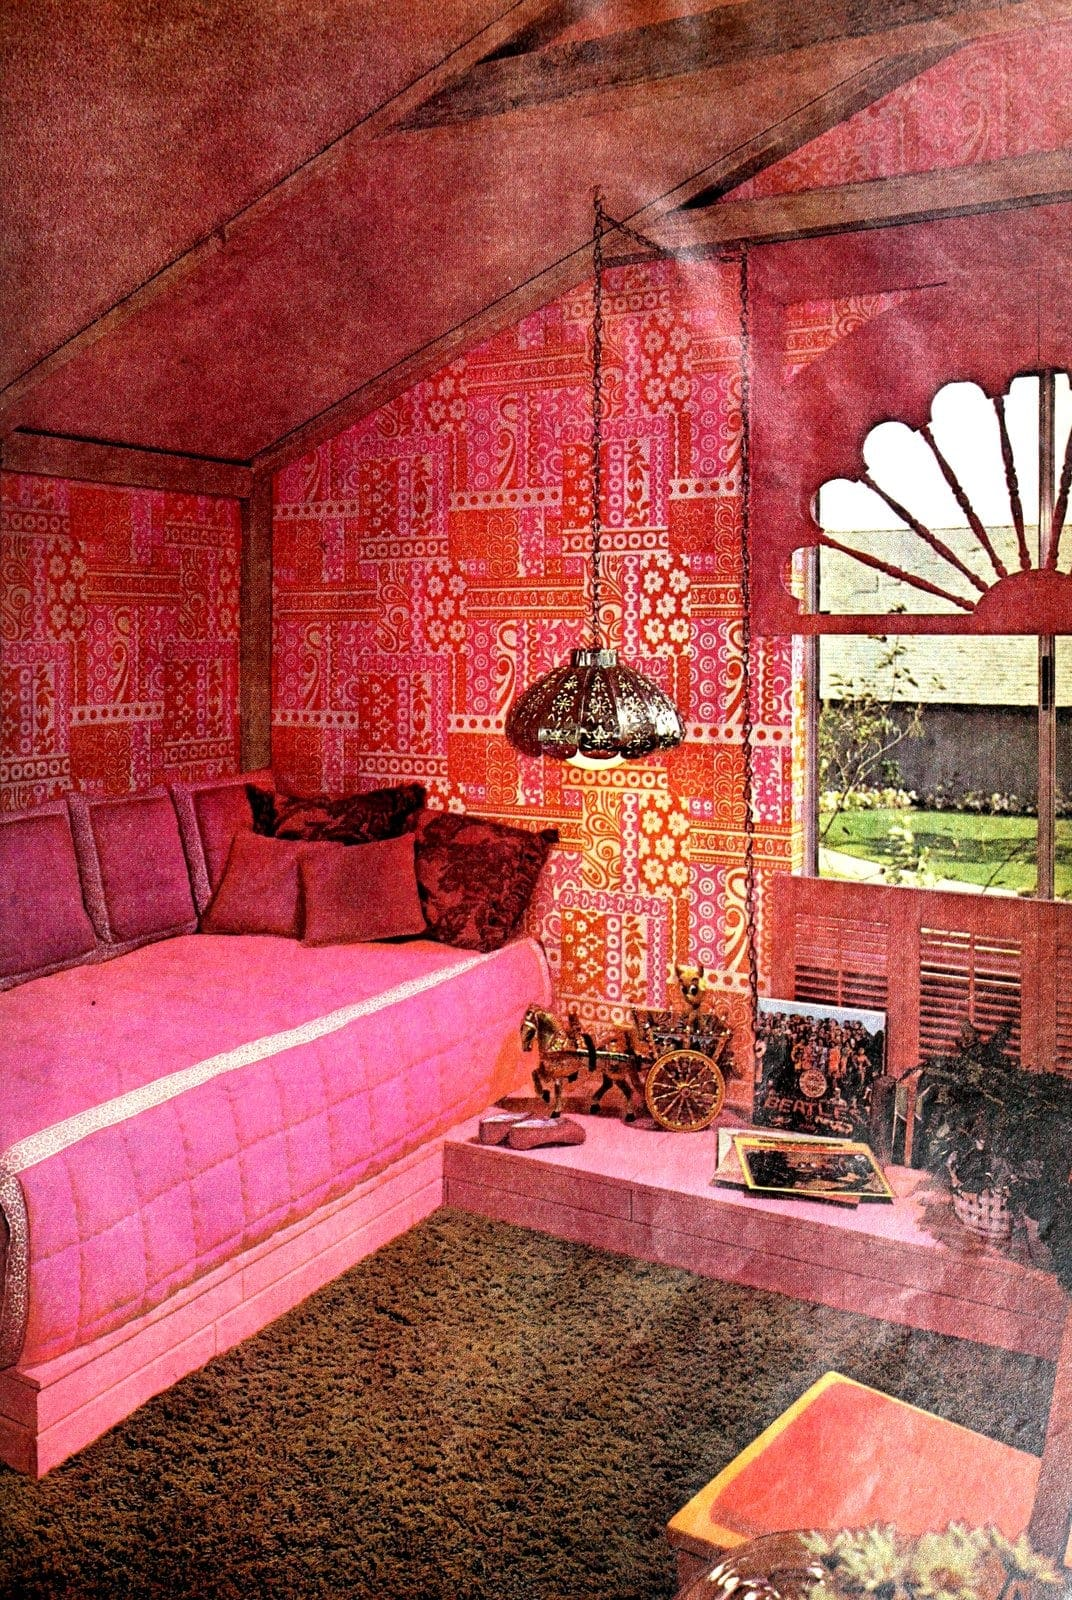 Pink retro bedroom with in vintage style (1970)